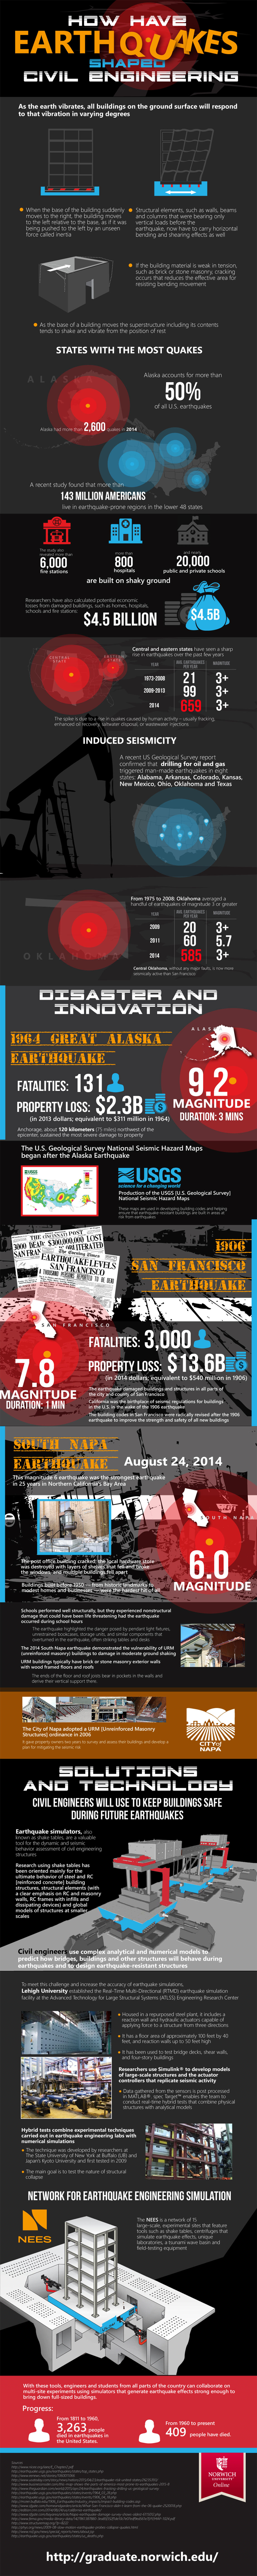 How Civil Engineering Protect Us from Earthquakes Infographic